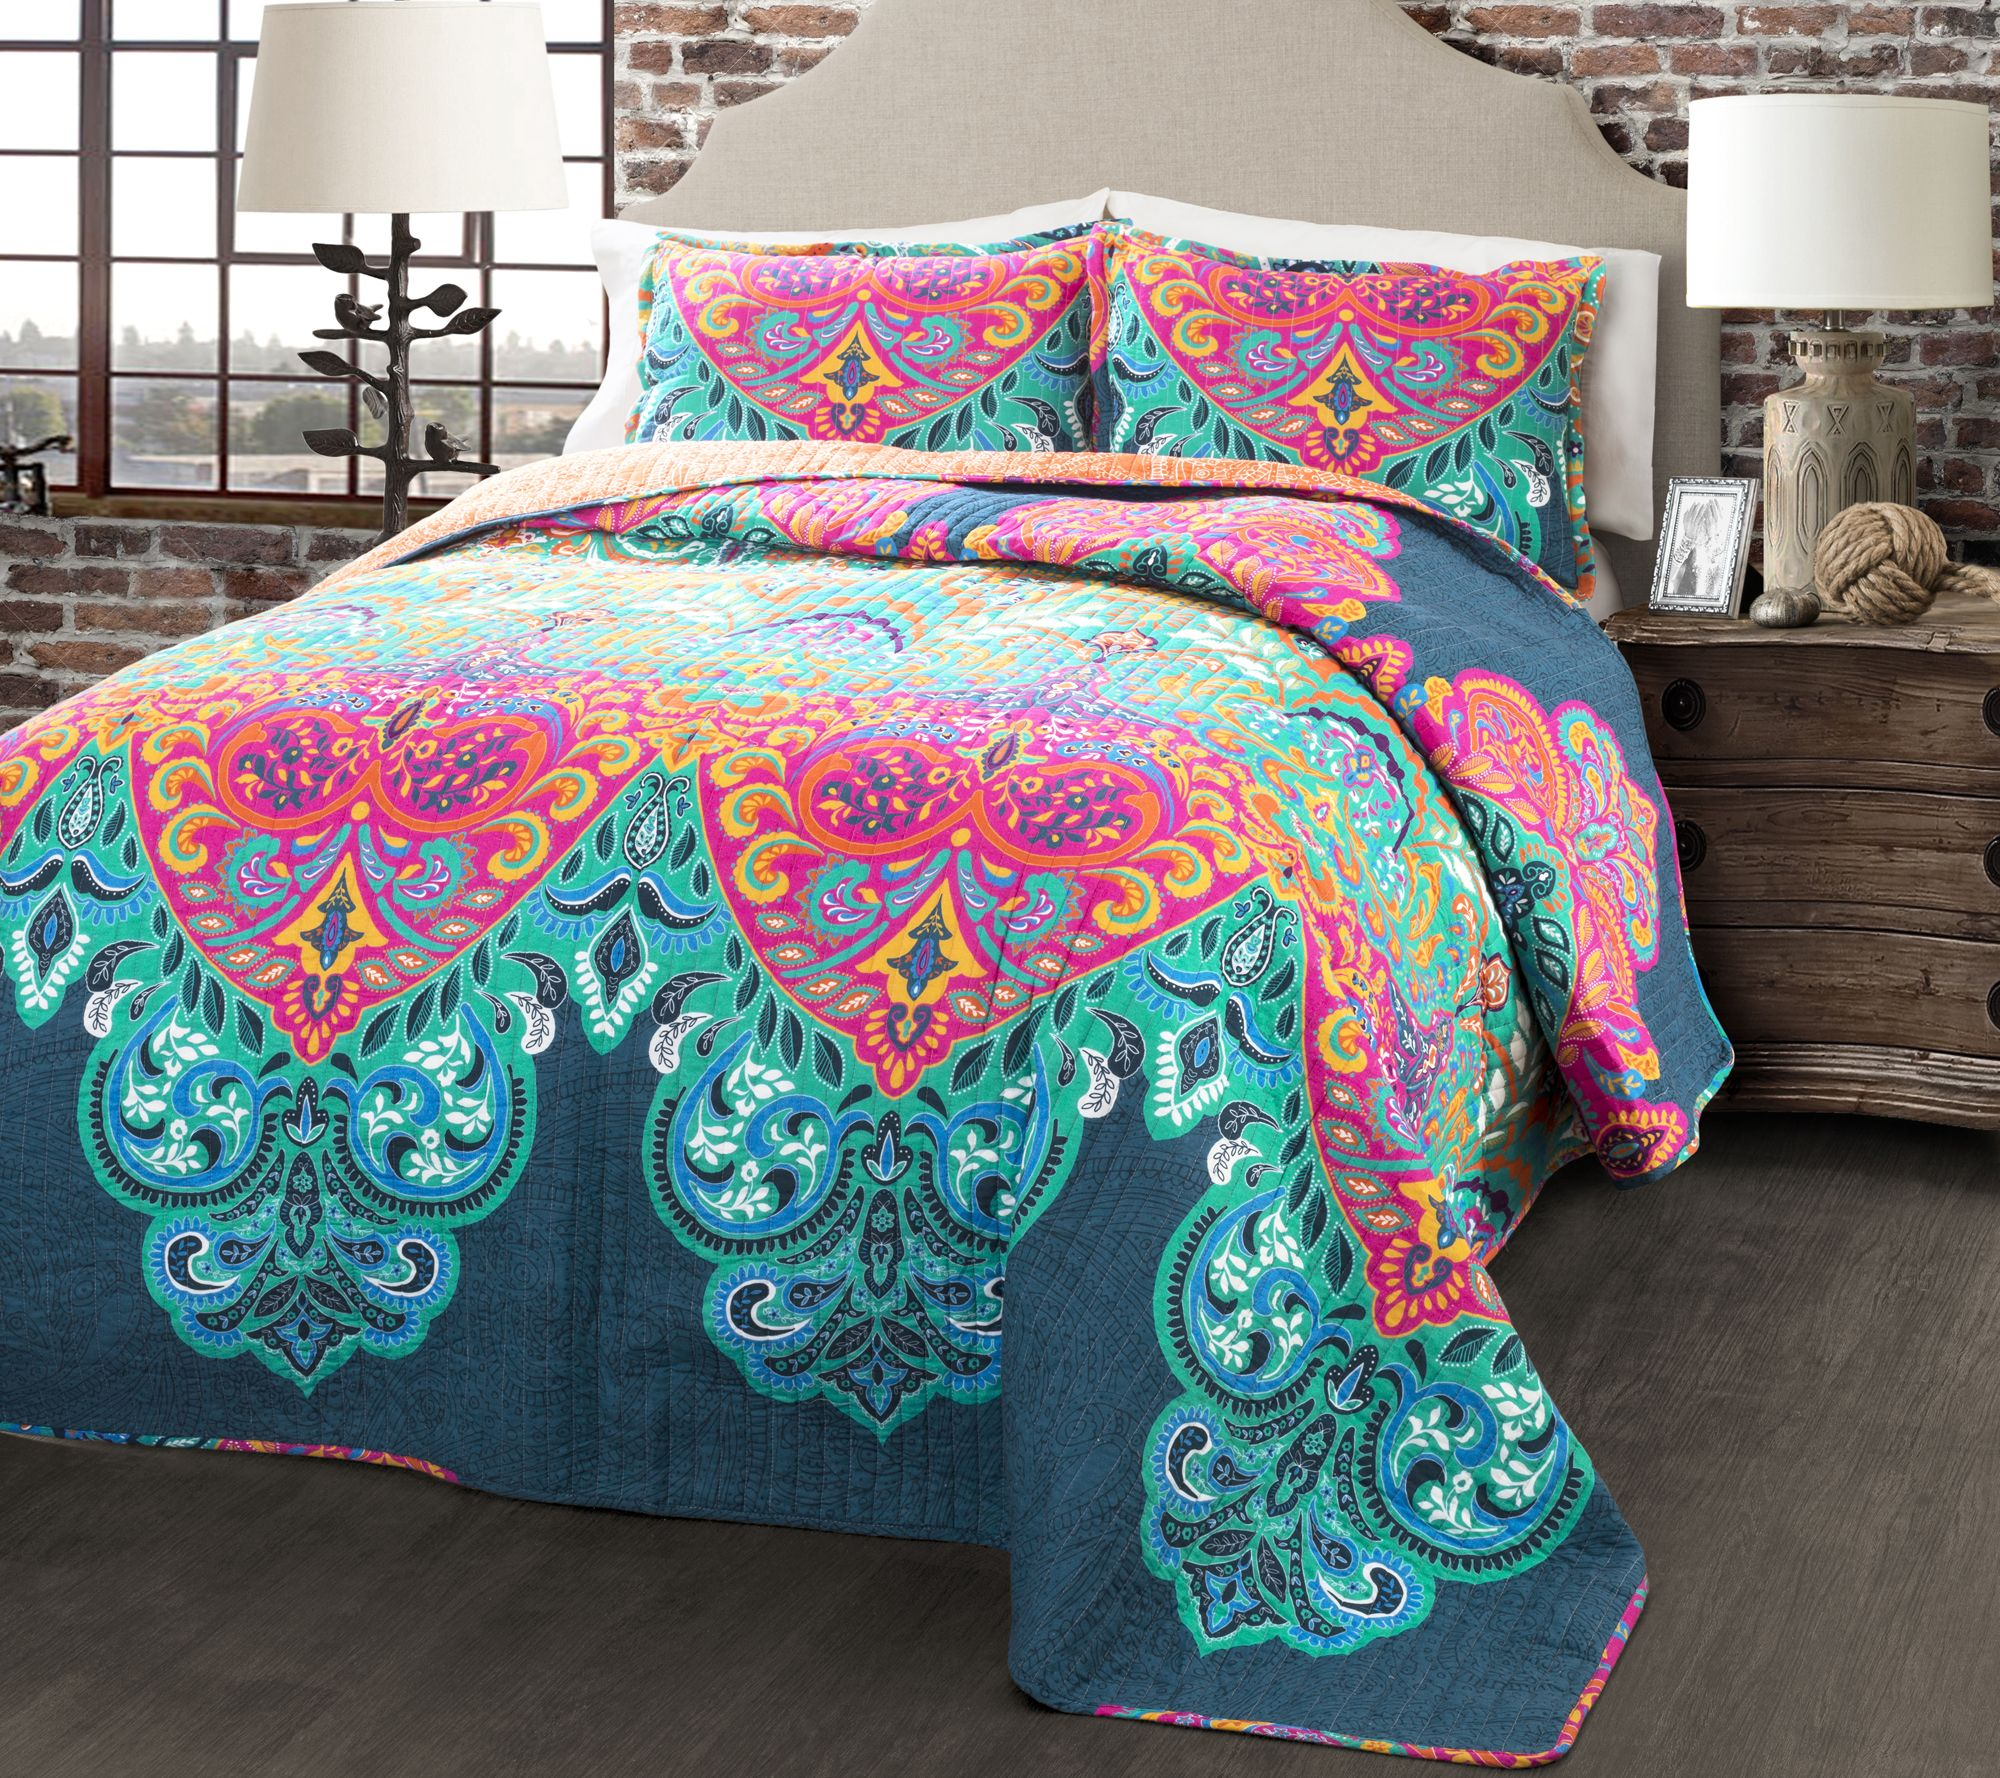 Boho Chic 3 Piece Full Queen Quilt Set By Lushdecor Page